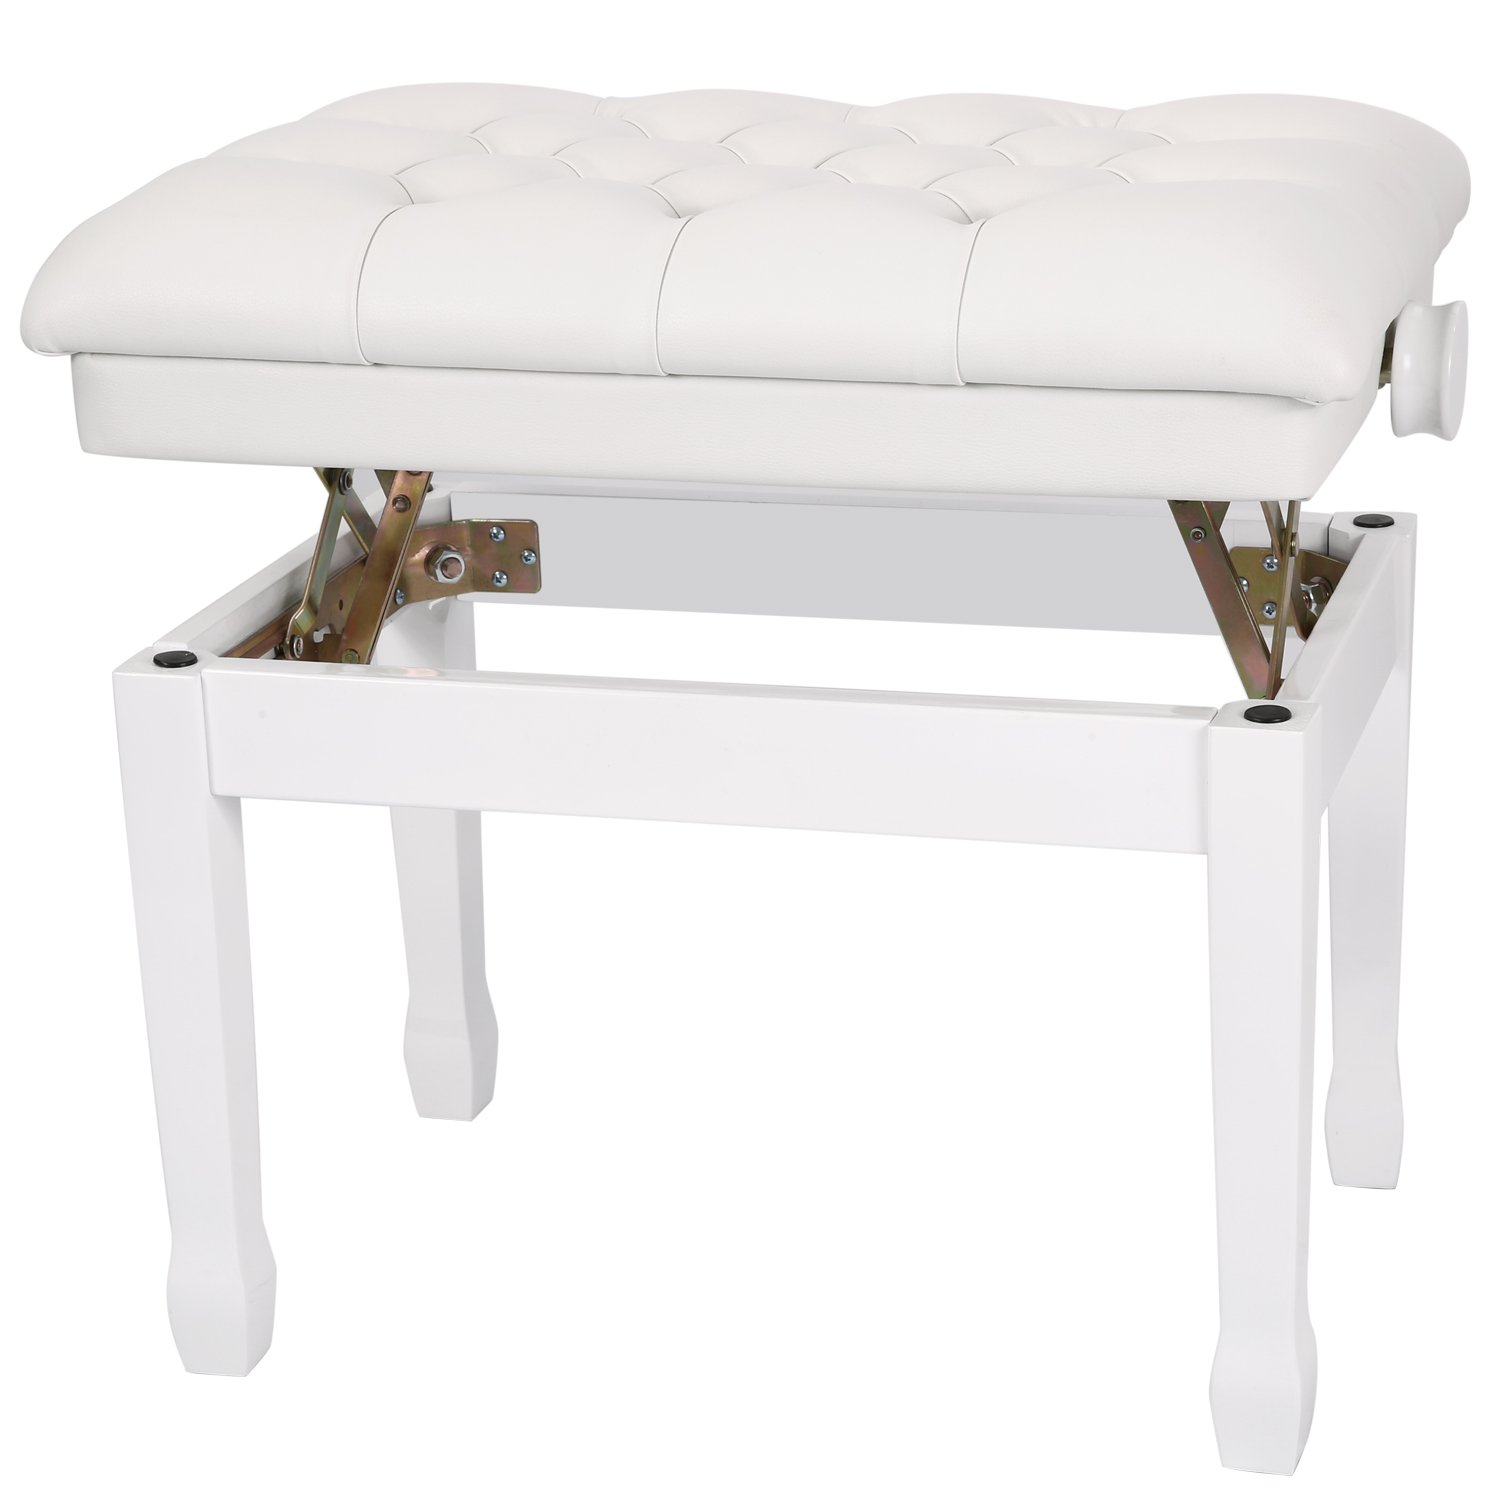 Neewer 18-22 inches/46-56 centimeters Height Adjustable Dual Padded Wooden Artist Piano Bench with Thick and Soft PU Leather Pillow Cushion for Deluxe Comfort (White) 40089767